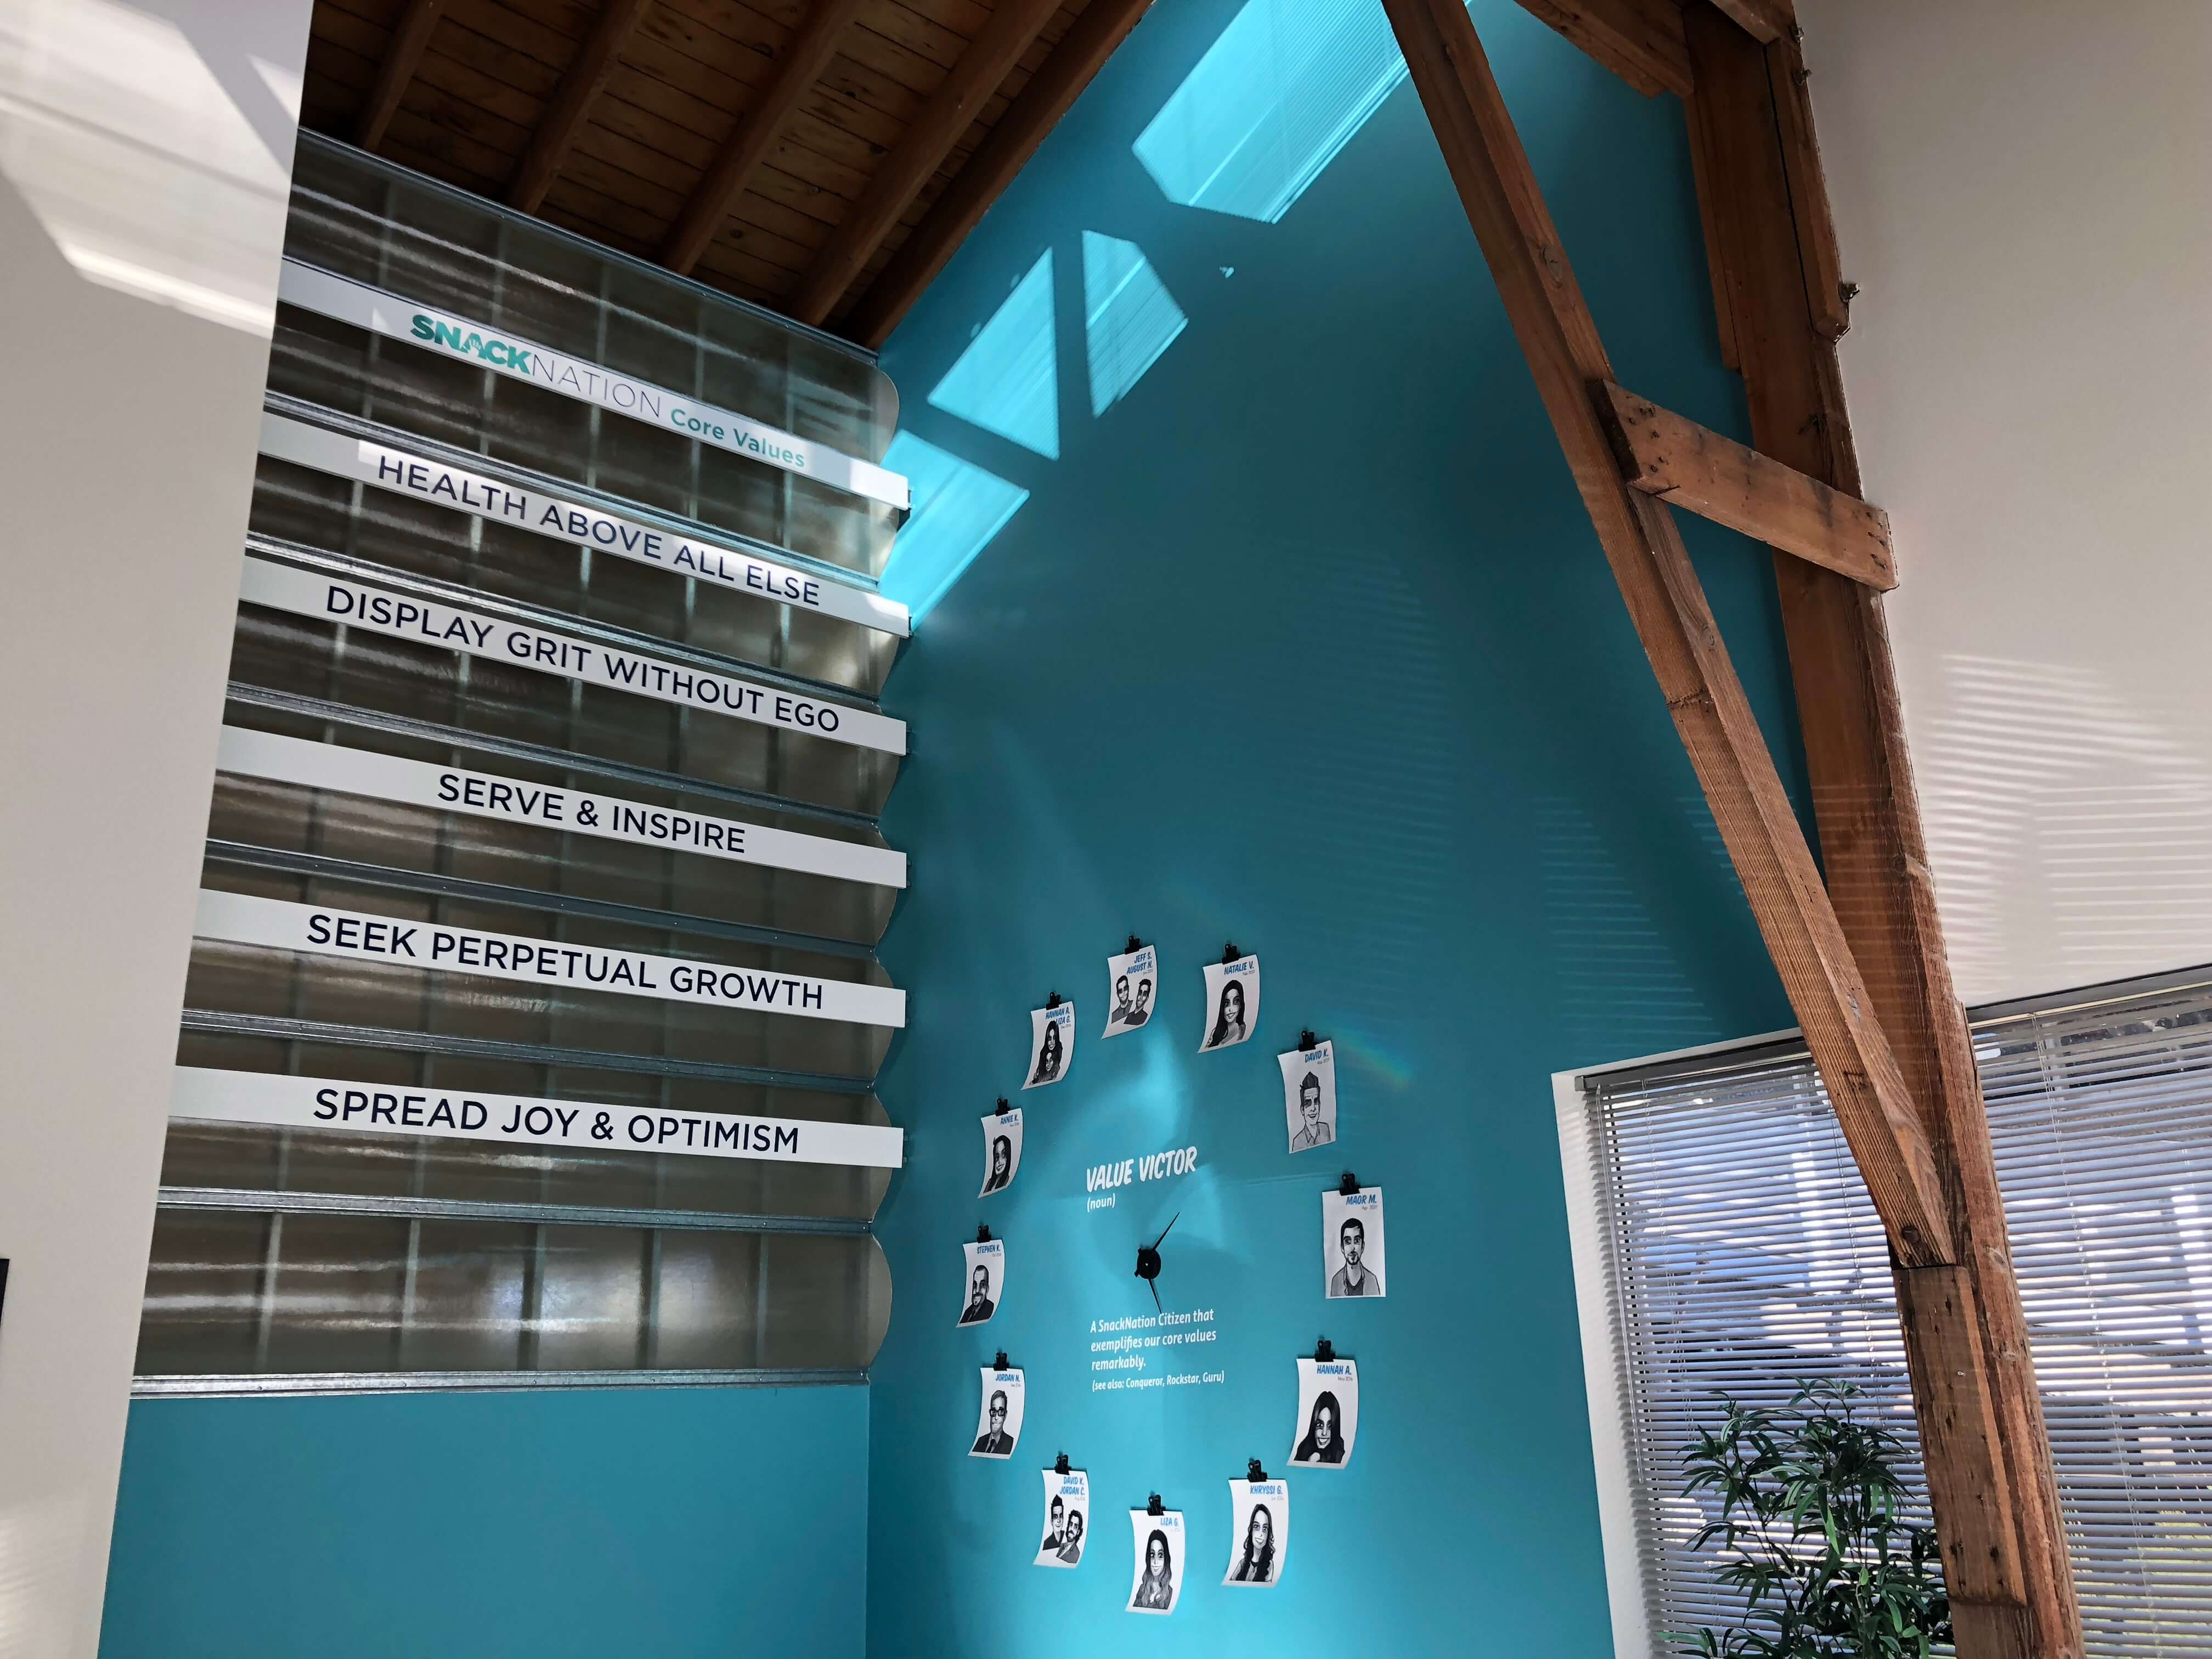 36 office decor ideas to inspire your team 39 s best work - Creative names for interior design business ...